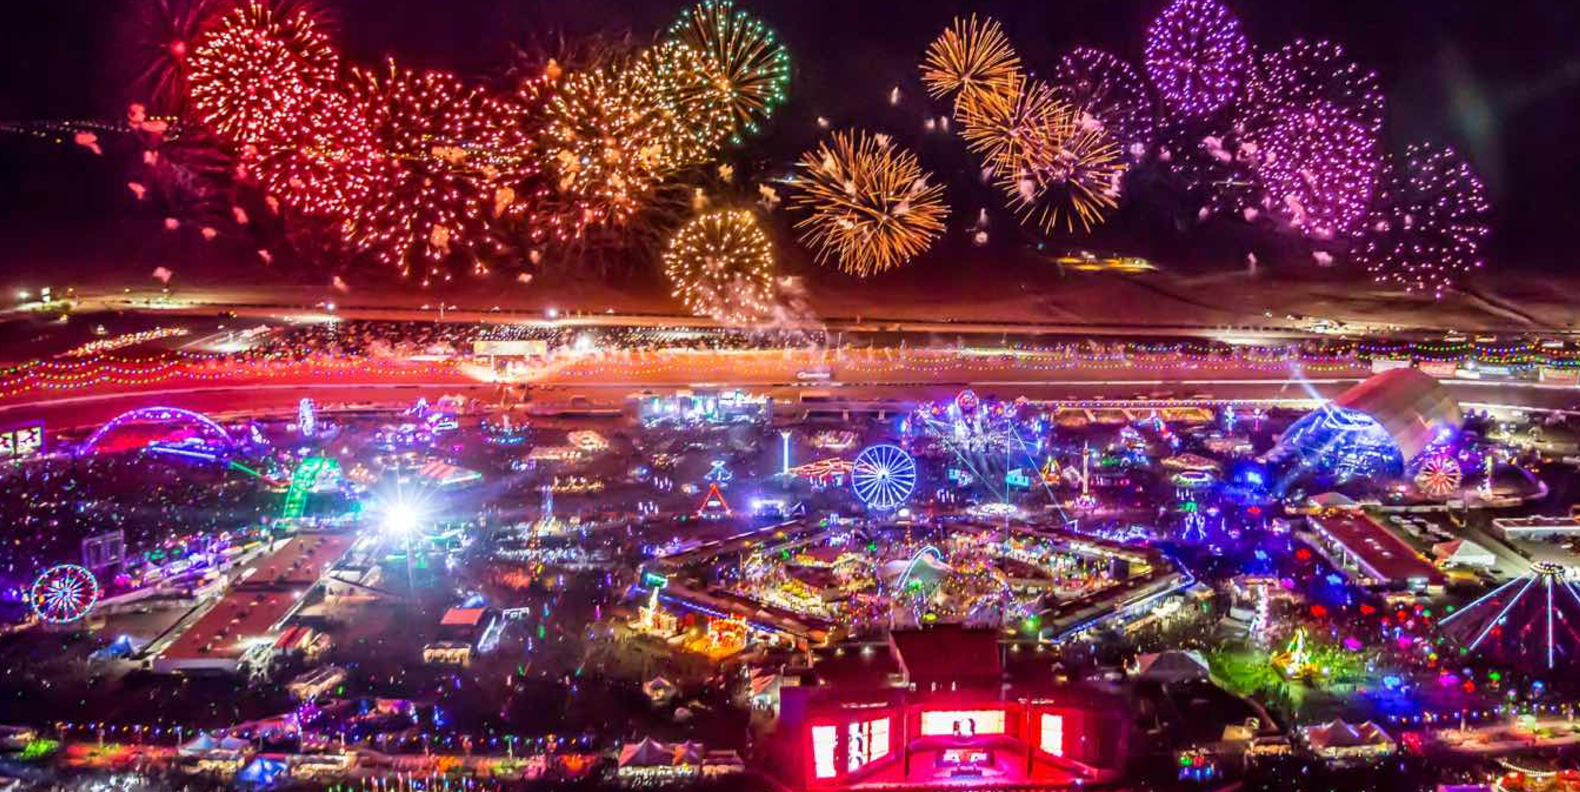 The Electric Daisy Carnival took place recently in Orlando.